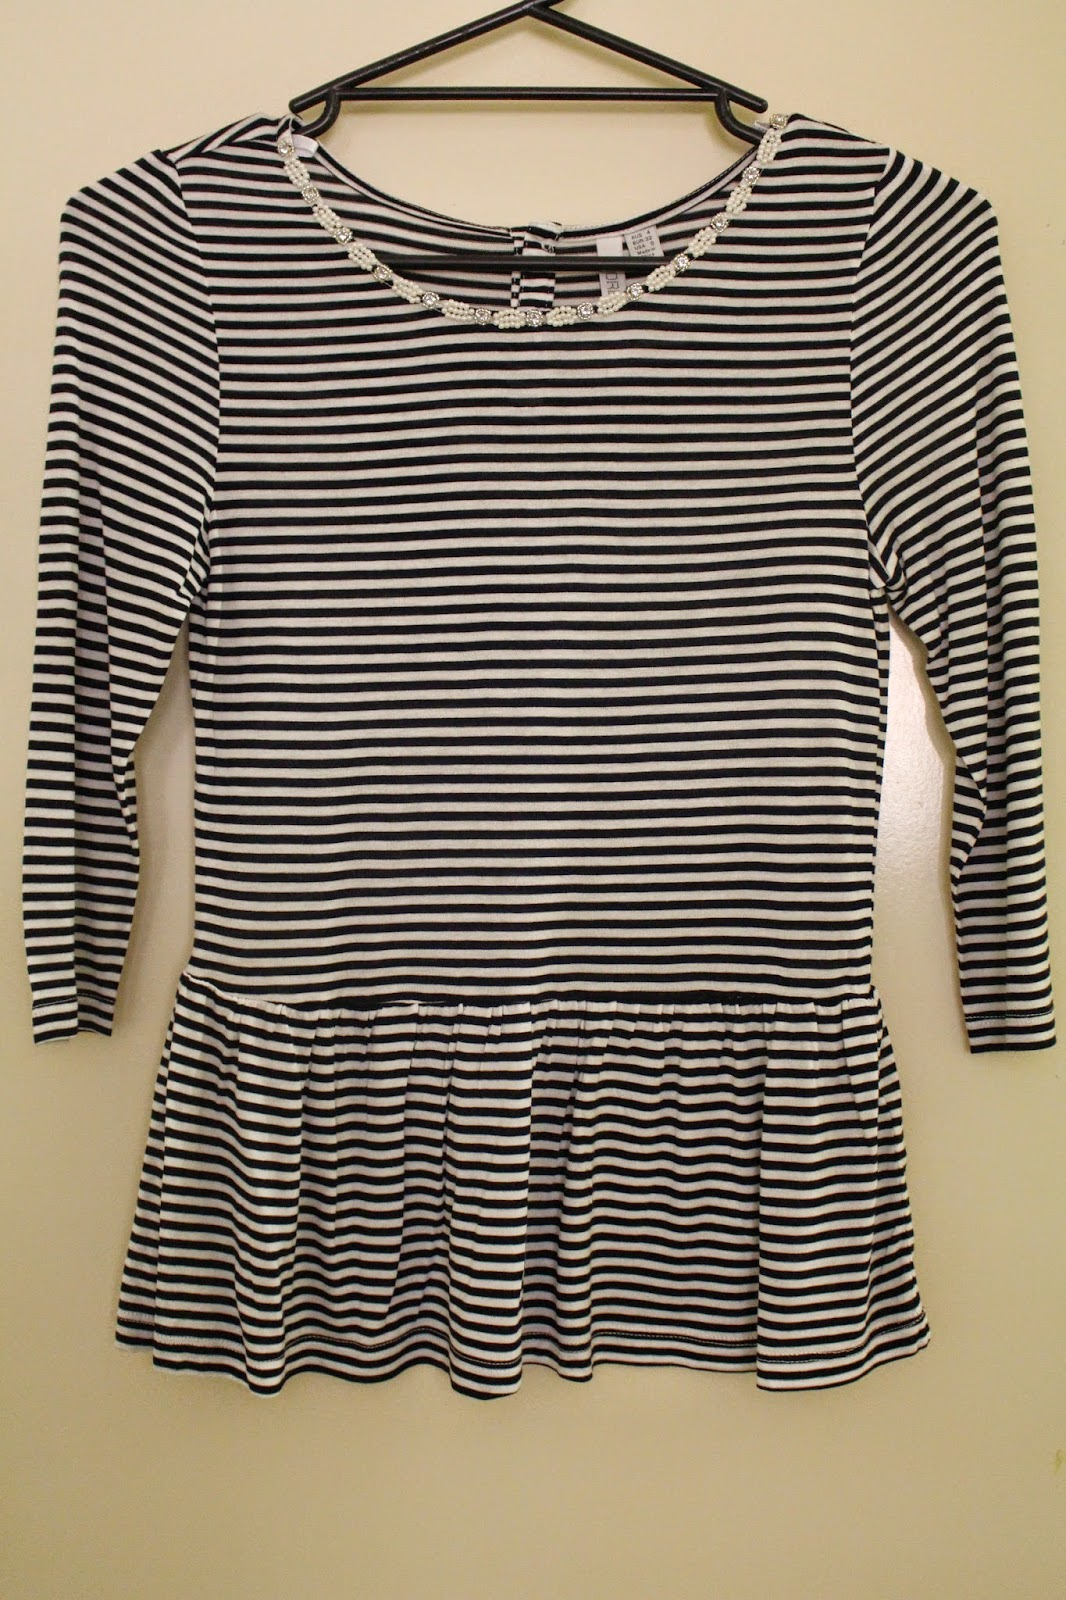 Winter clothing haul 2014, haul, clothing haul, winter haul, long sleeved black top, lace cream top, striped peplum top, black riding boots, black super skinny jeans